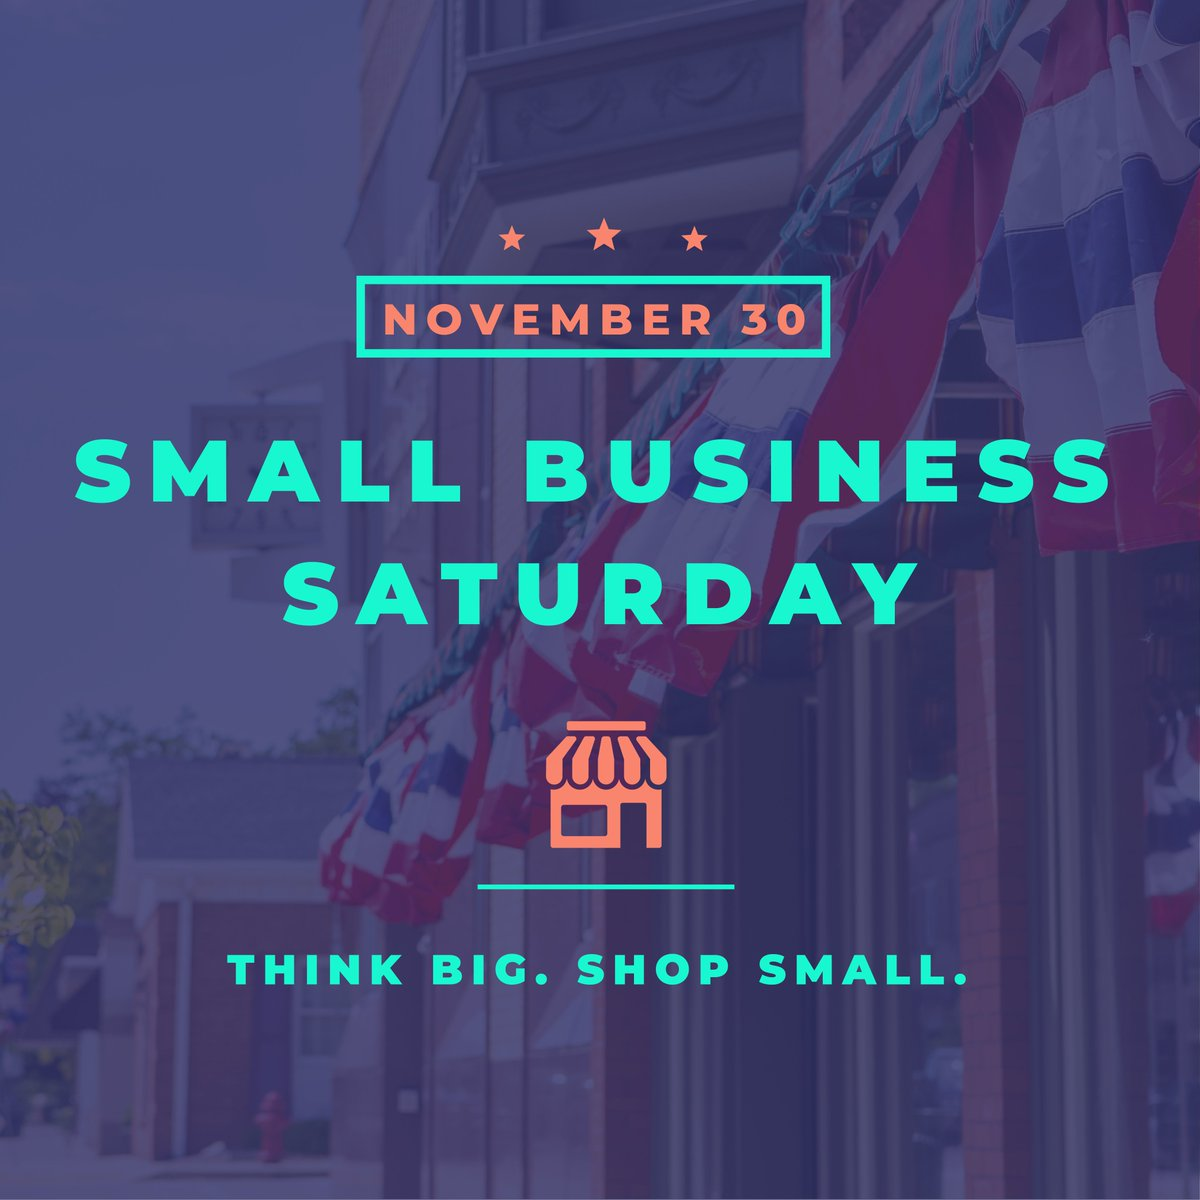 Small businesses are the backbone of our economy in Oklahoma, employing over half of our state's workforce. On this #SmallBusinessSaturday, let's show our support for our local and family-owned small businesses.